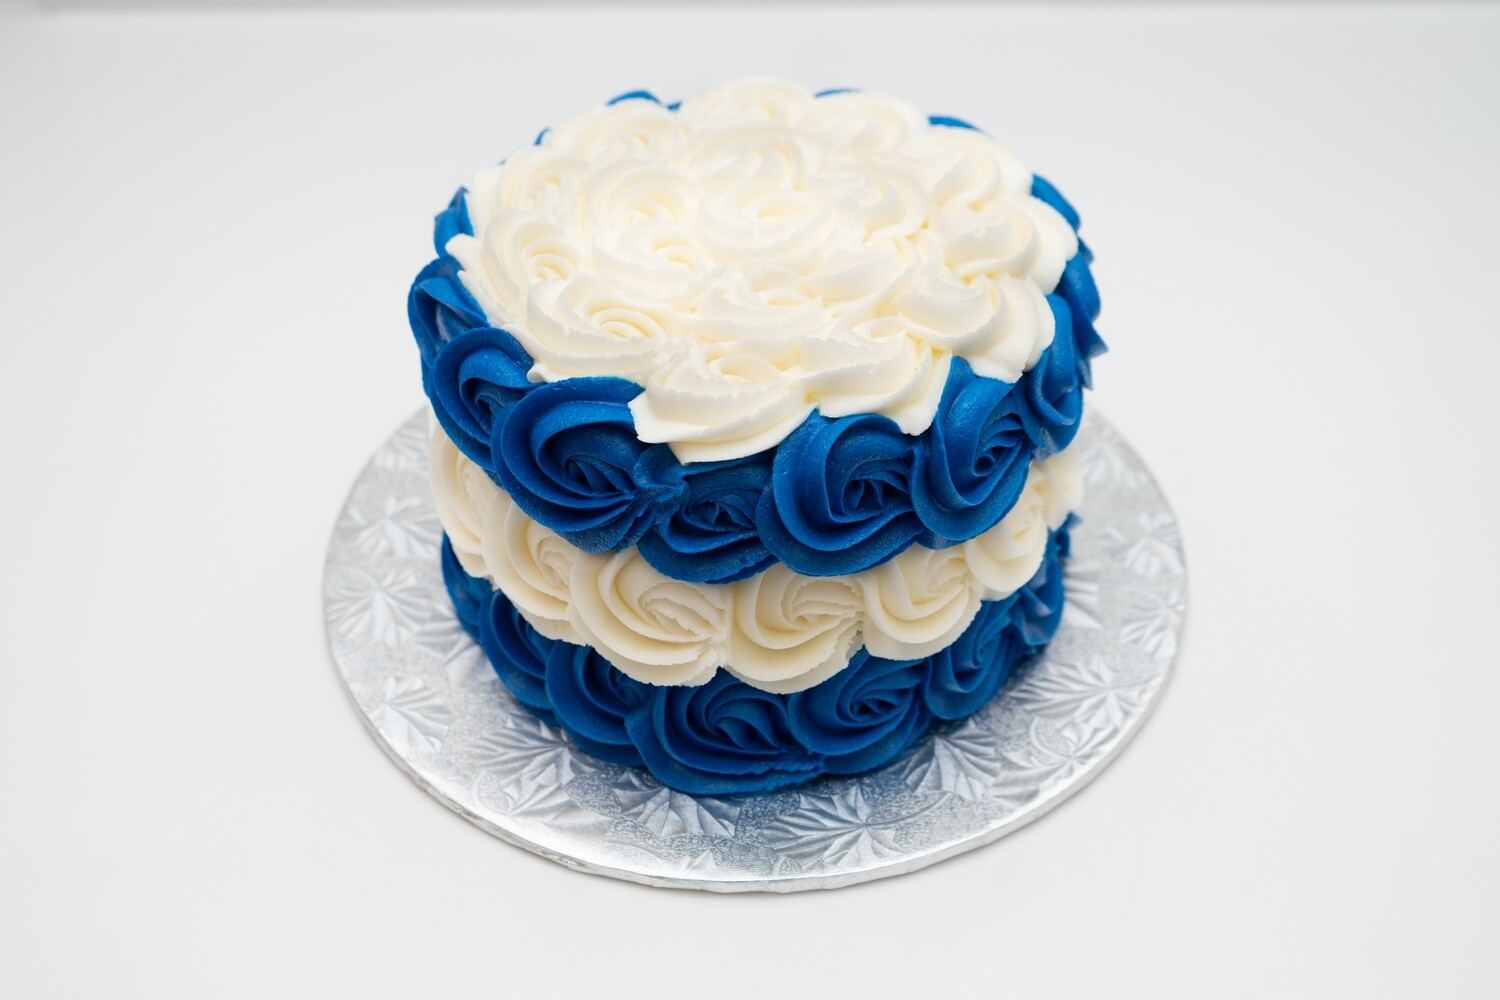 Blue and White Rosette Cake